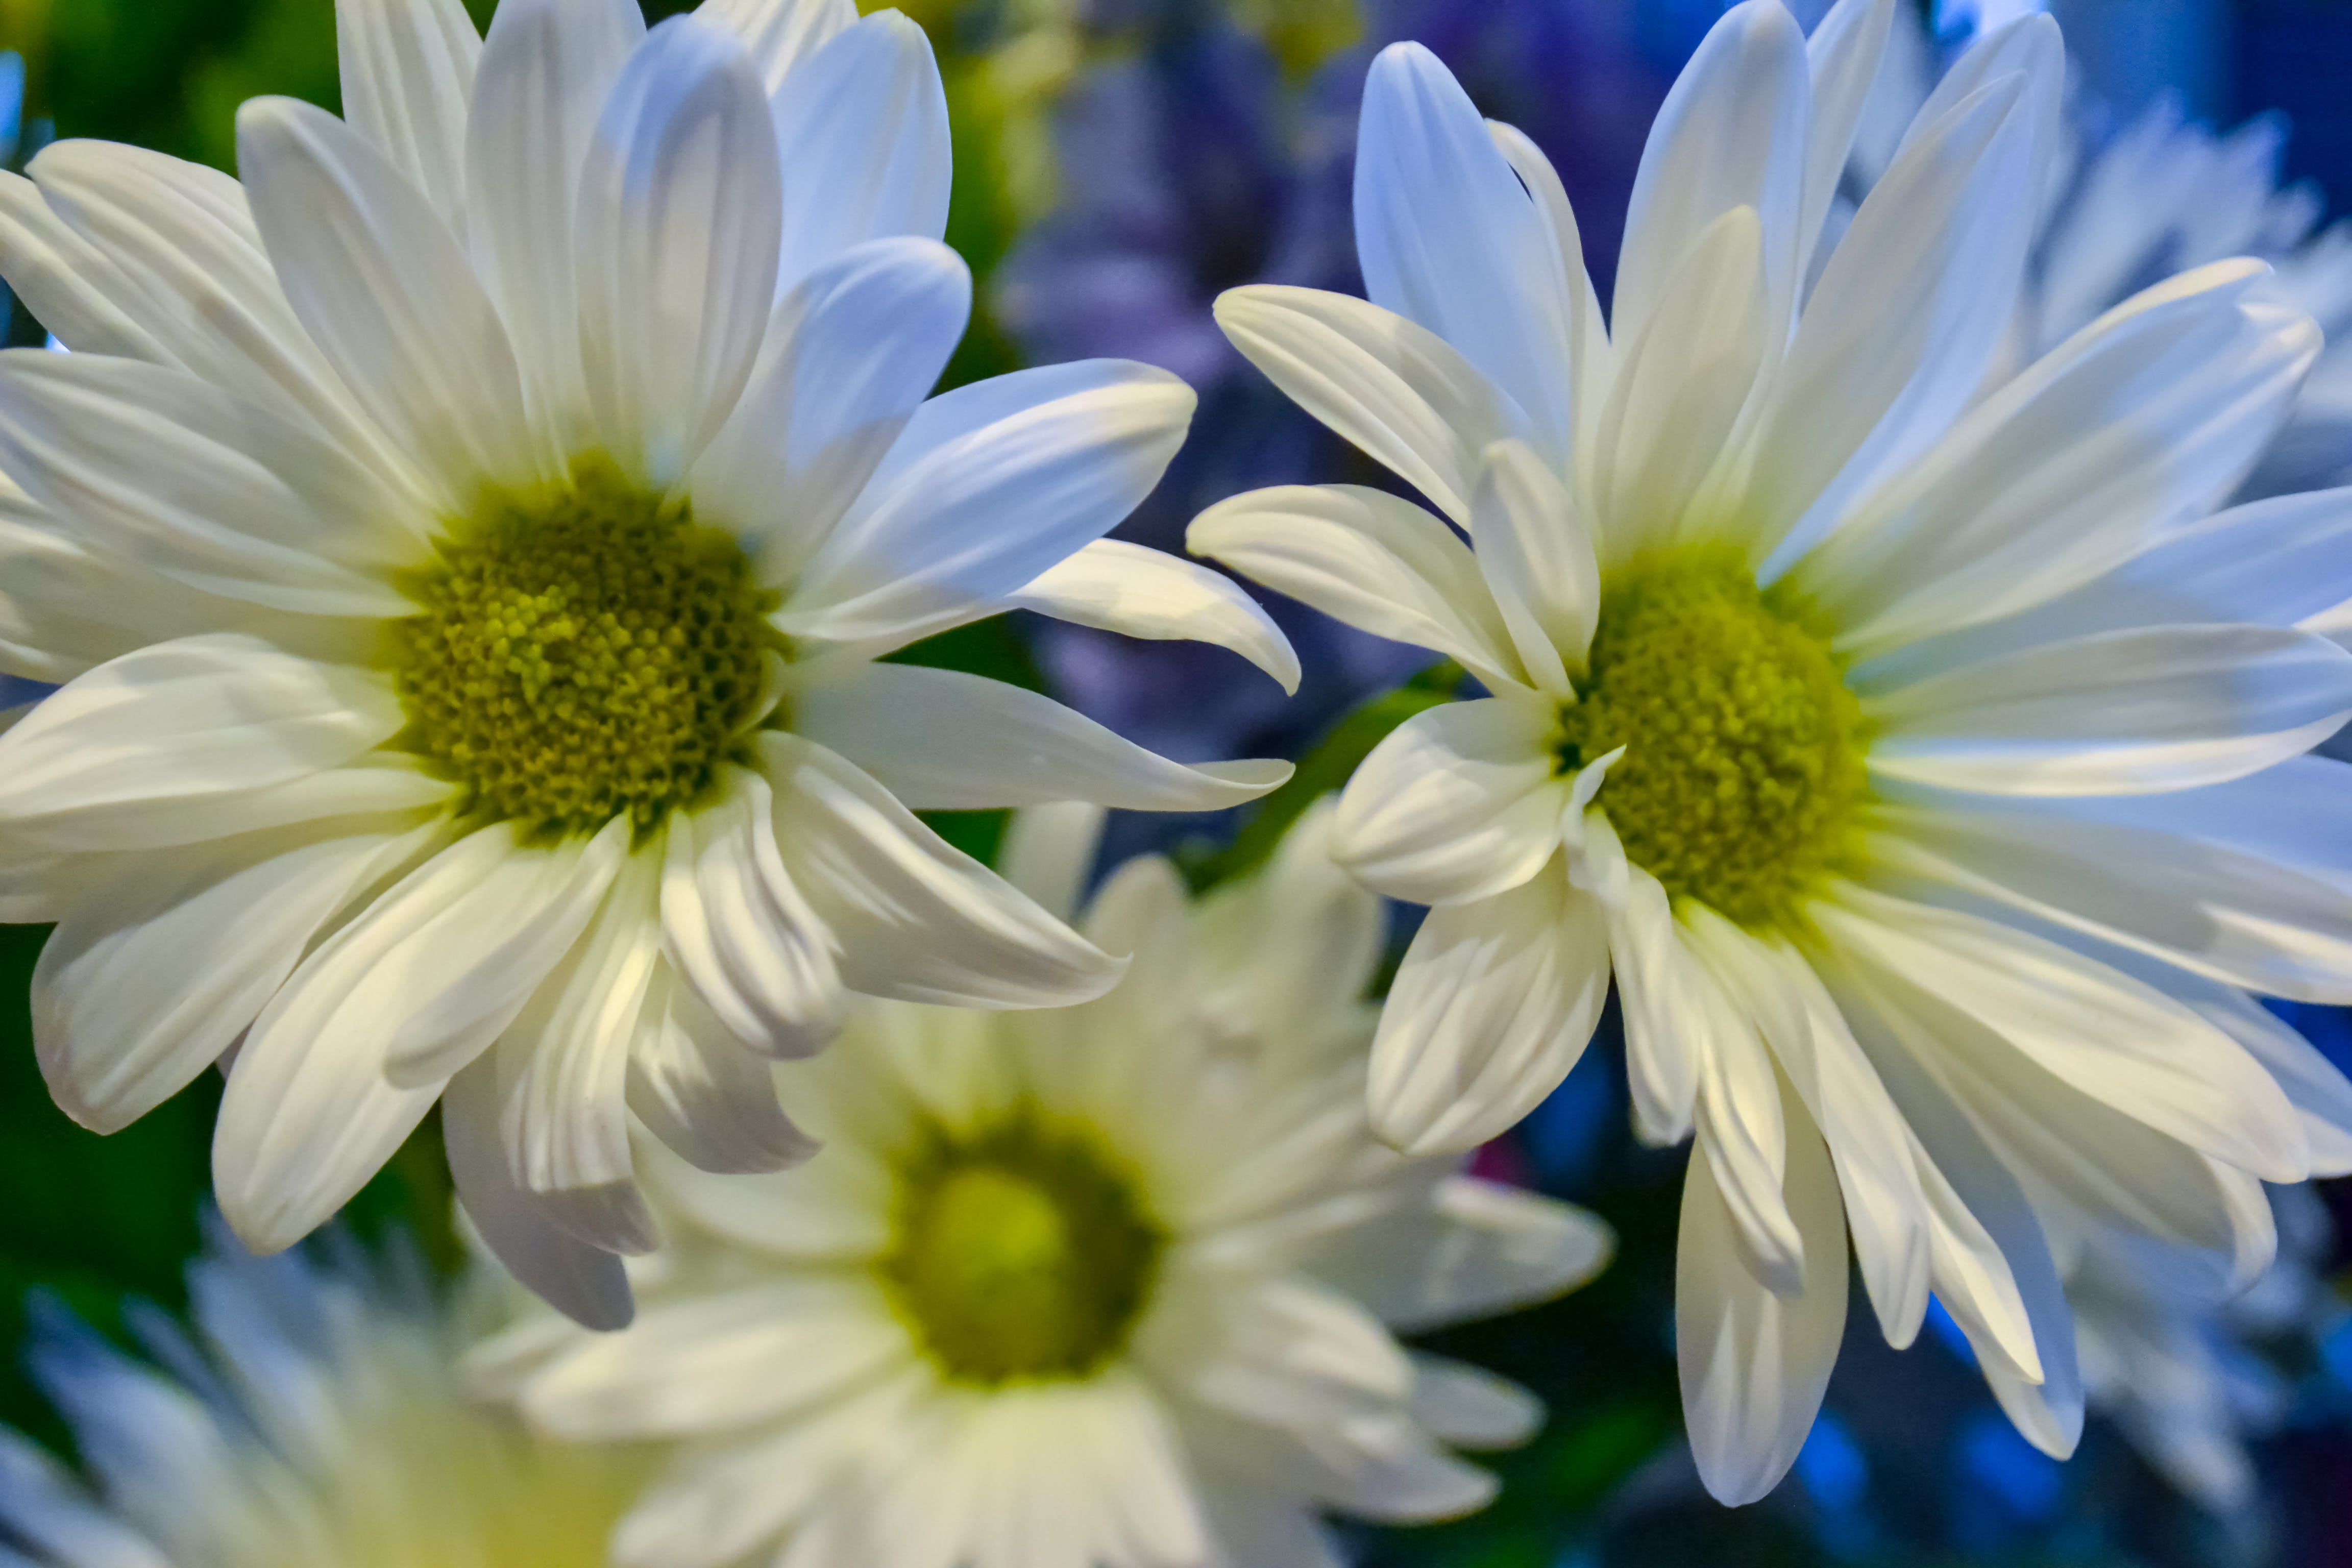 Shallow Focus Photography of White Petaled Flower